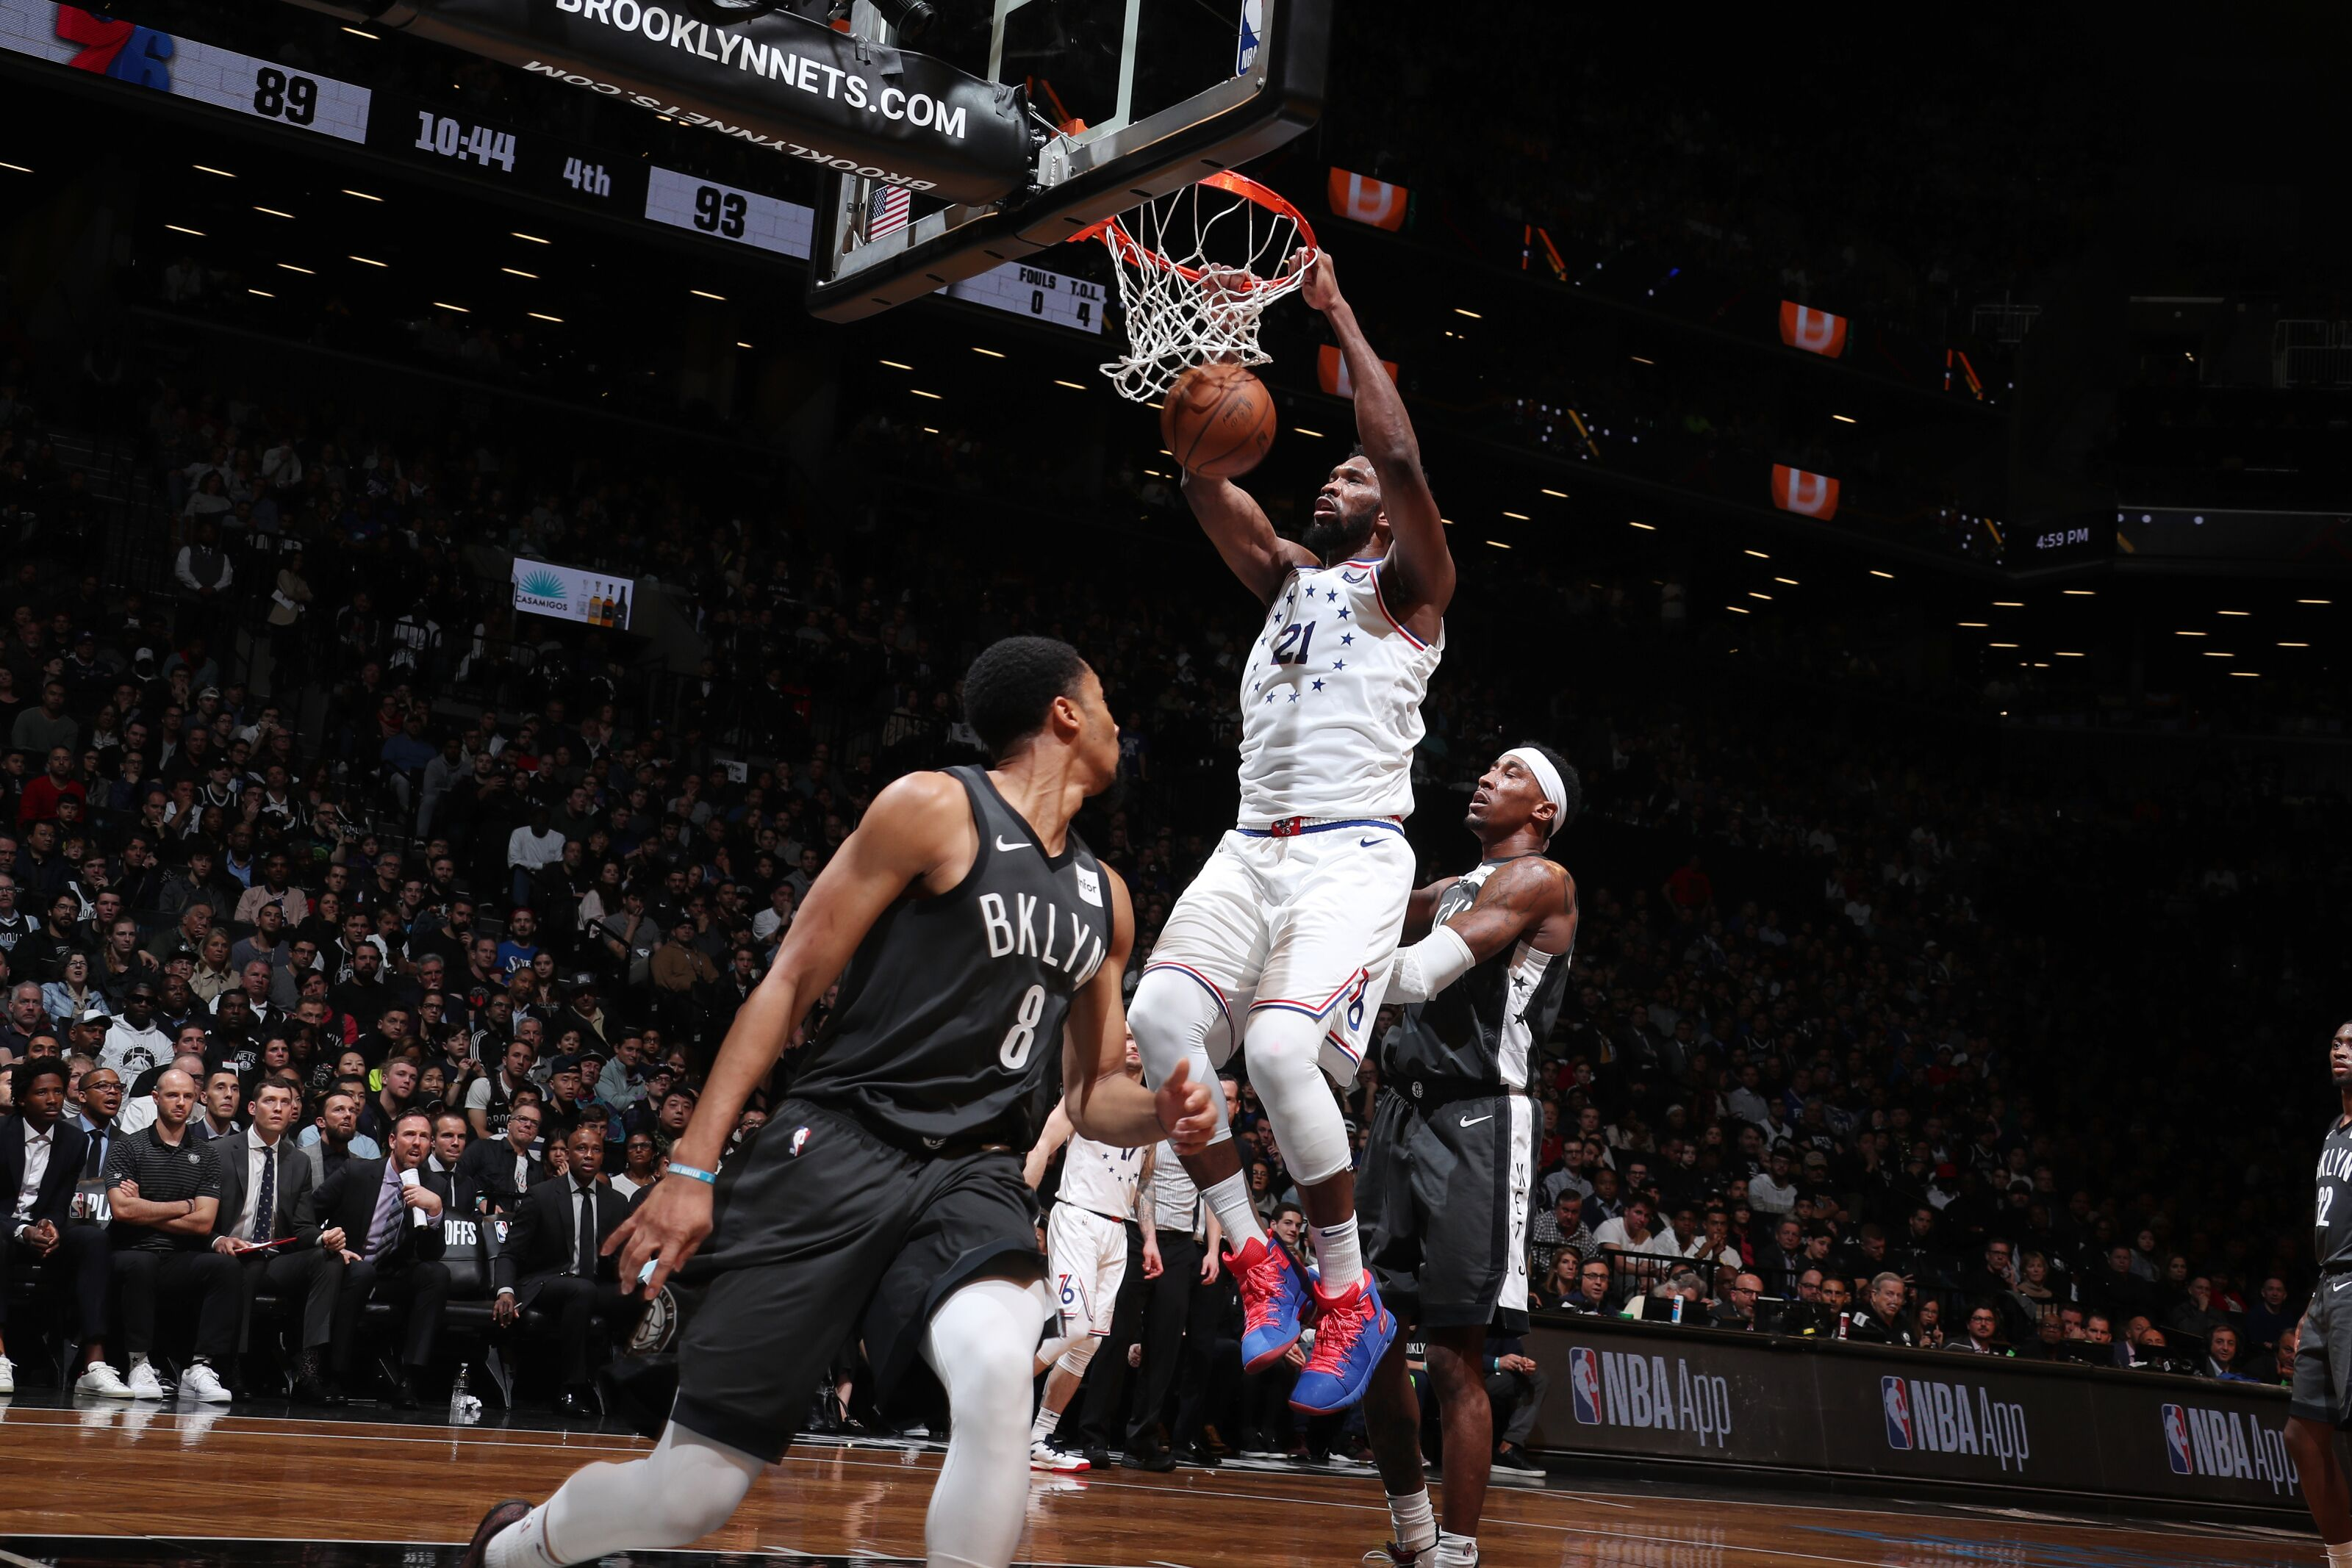 76ers push Nets to the brink with wild Game 4 win